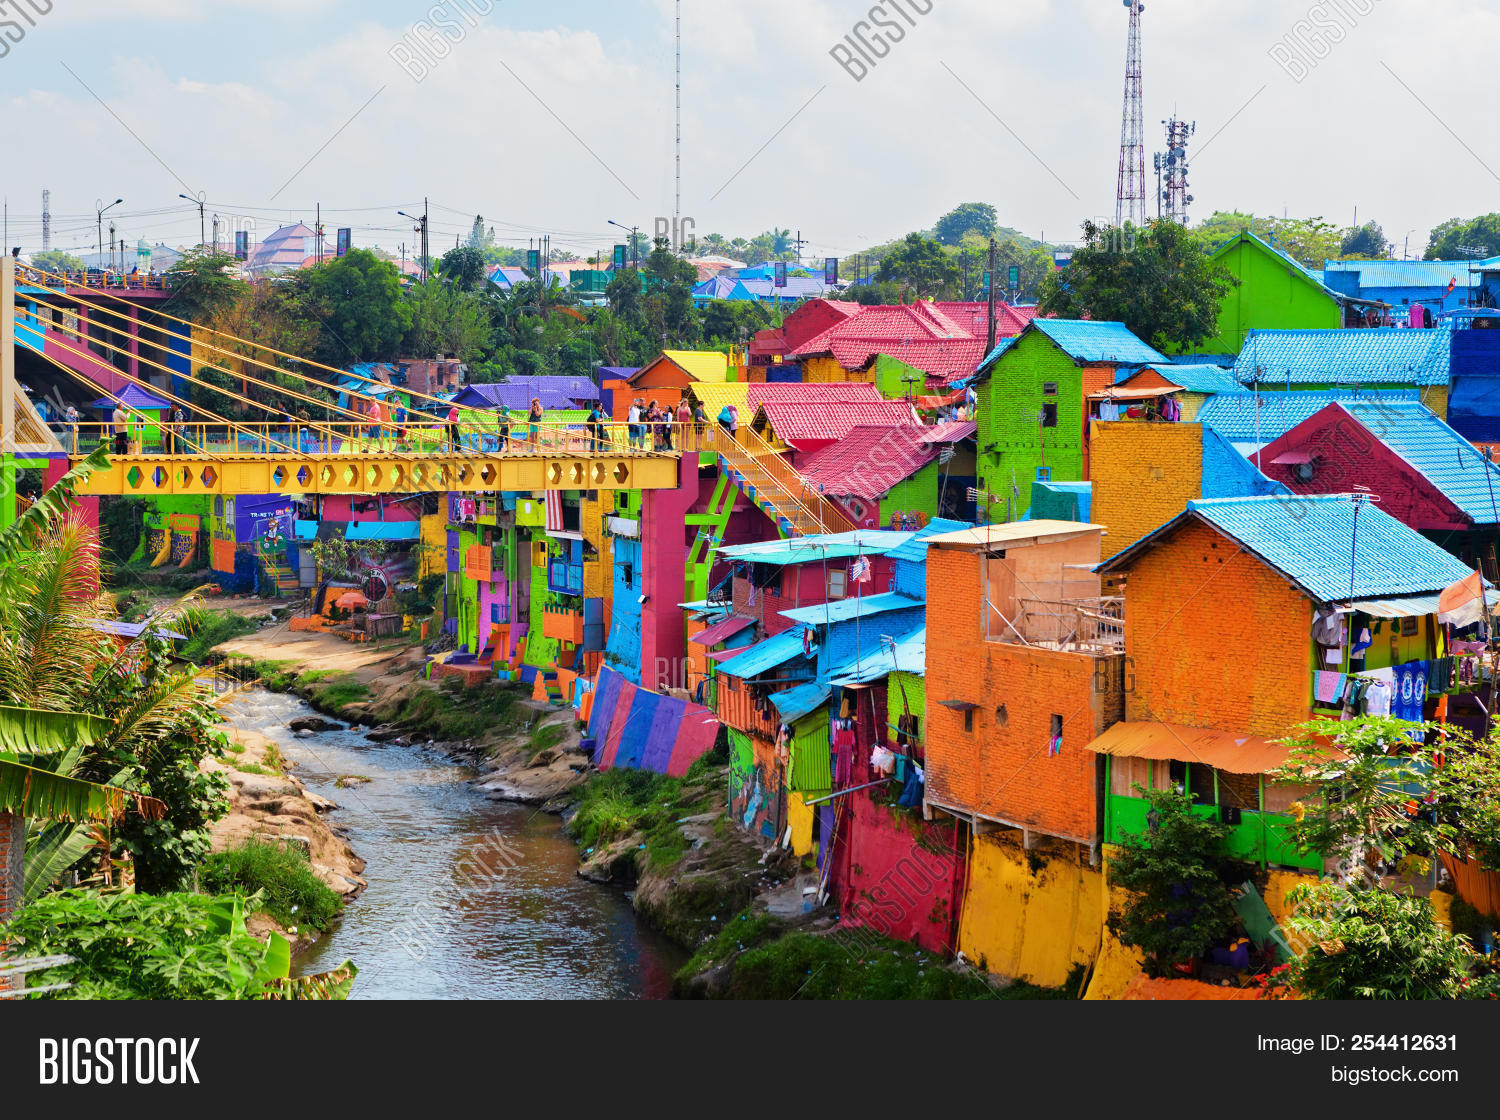 Malang Indonesia Image Photo Free Trial Bigstock